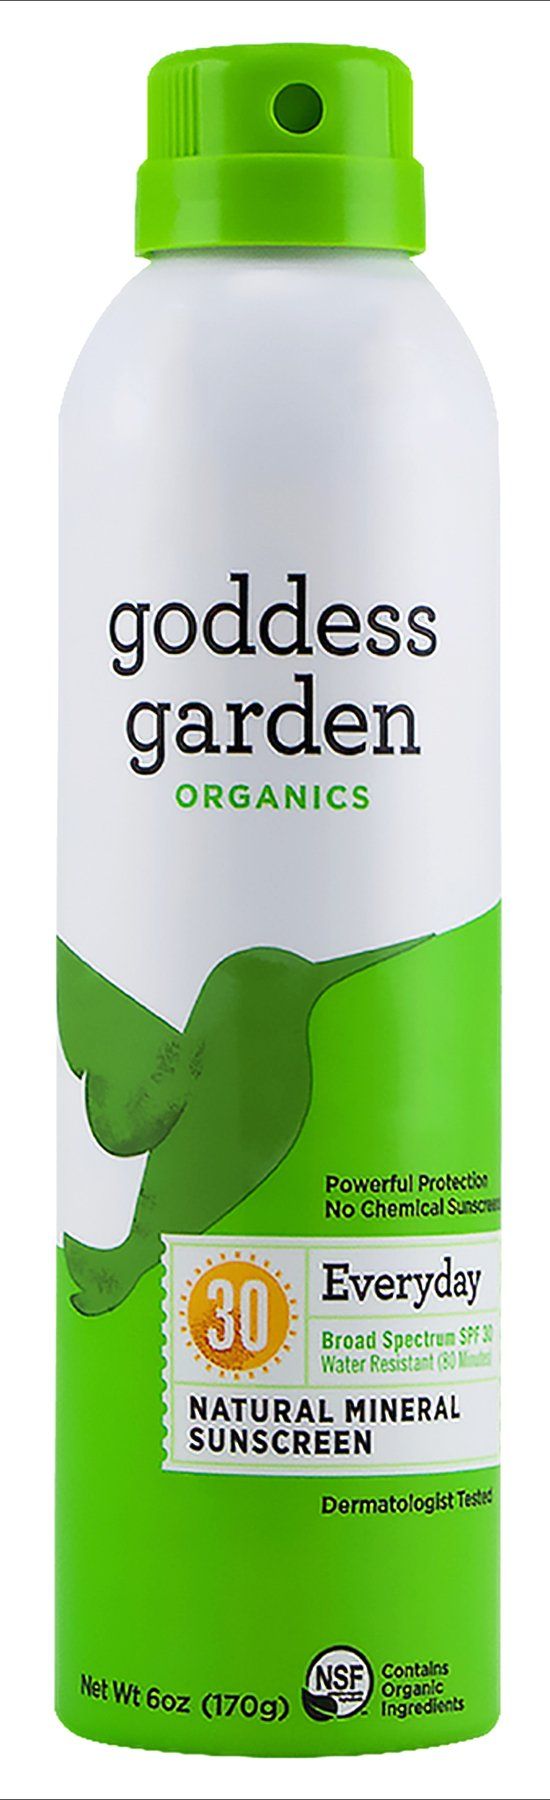 year what different sunblockarm a ladymeag blog goddess let old beauty products your make laugh ready and s suncare will inner that with reluctant get organics use for i sunblocks garden start photo sunscreen